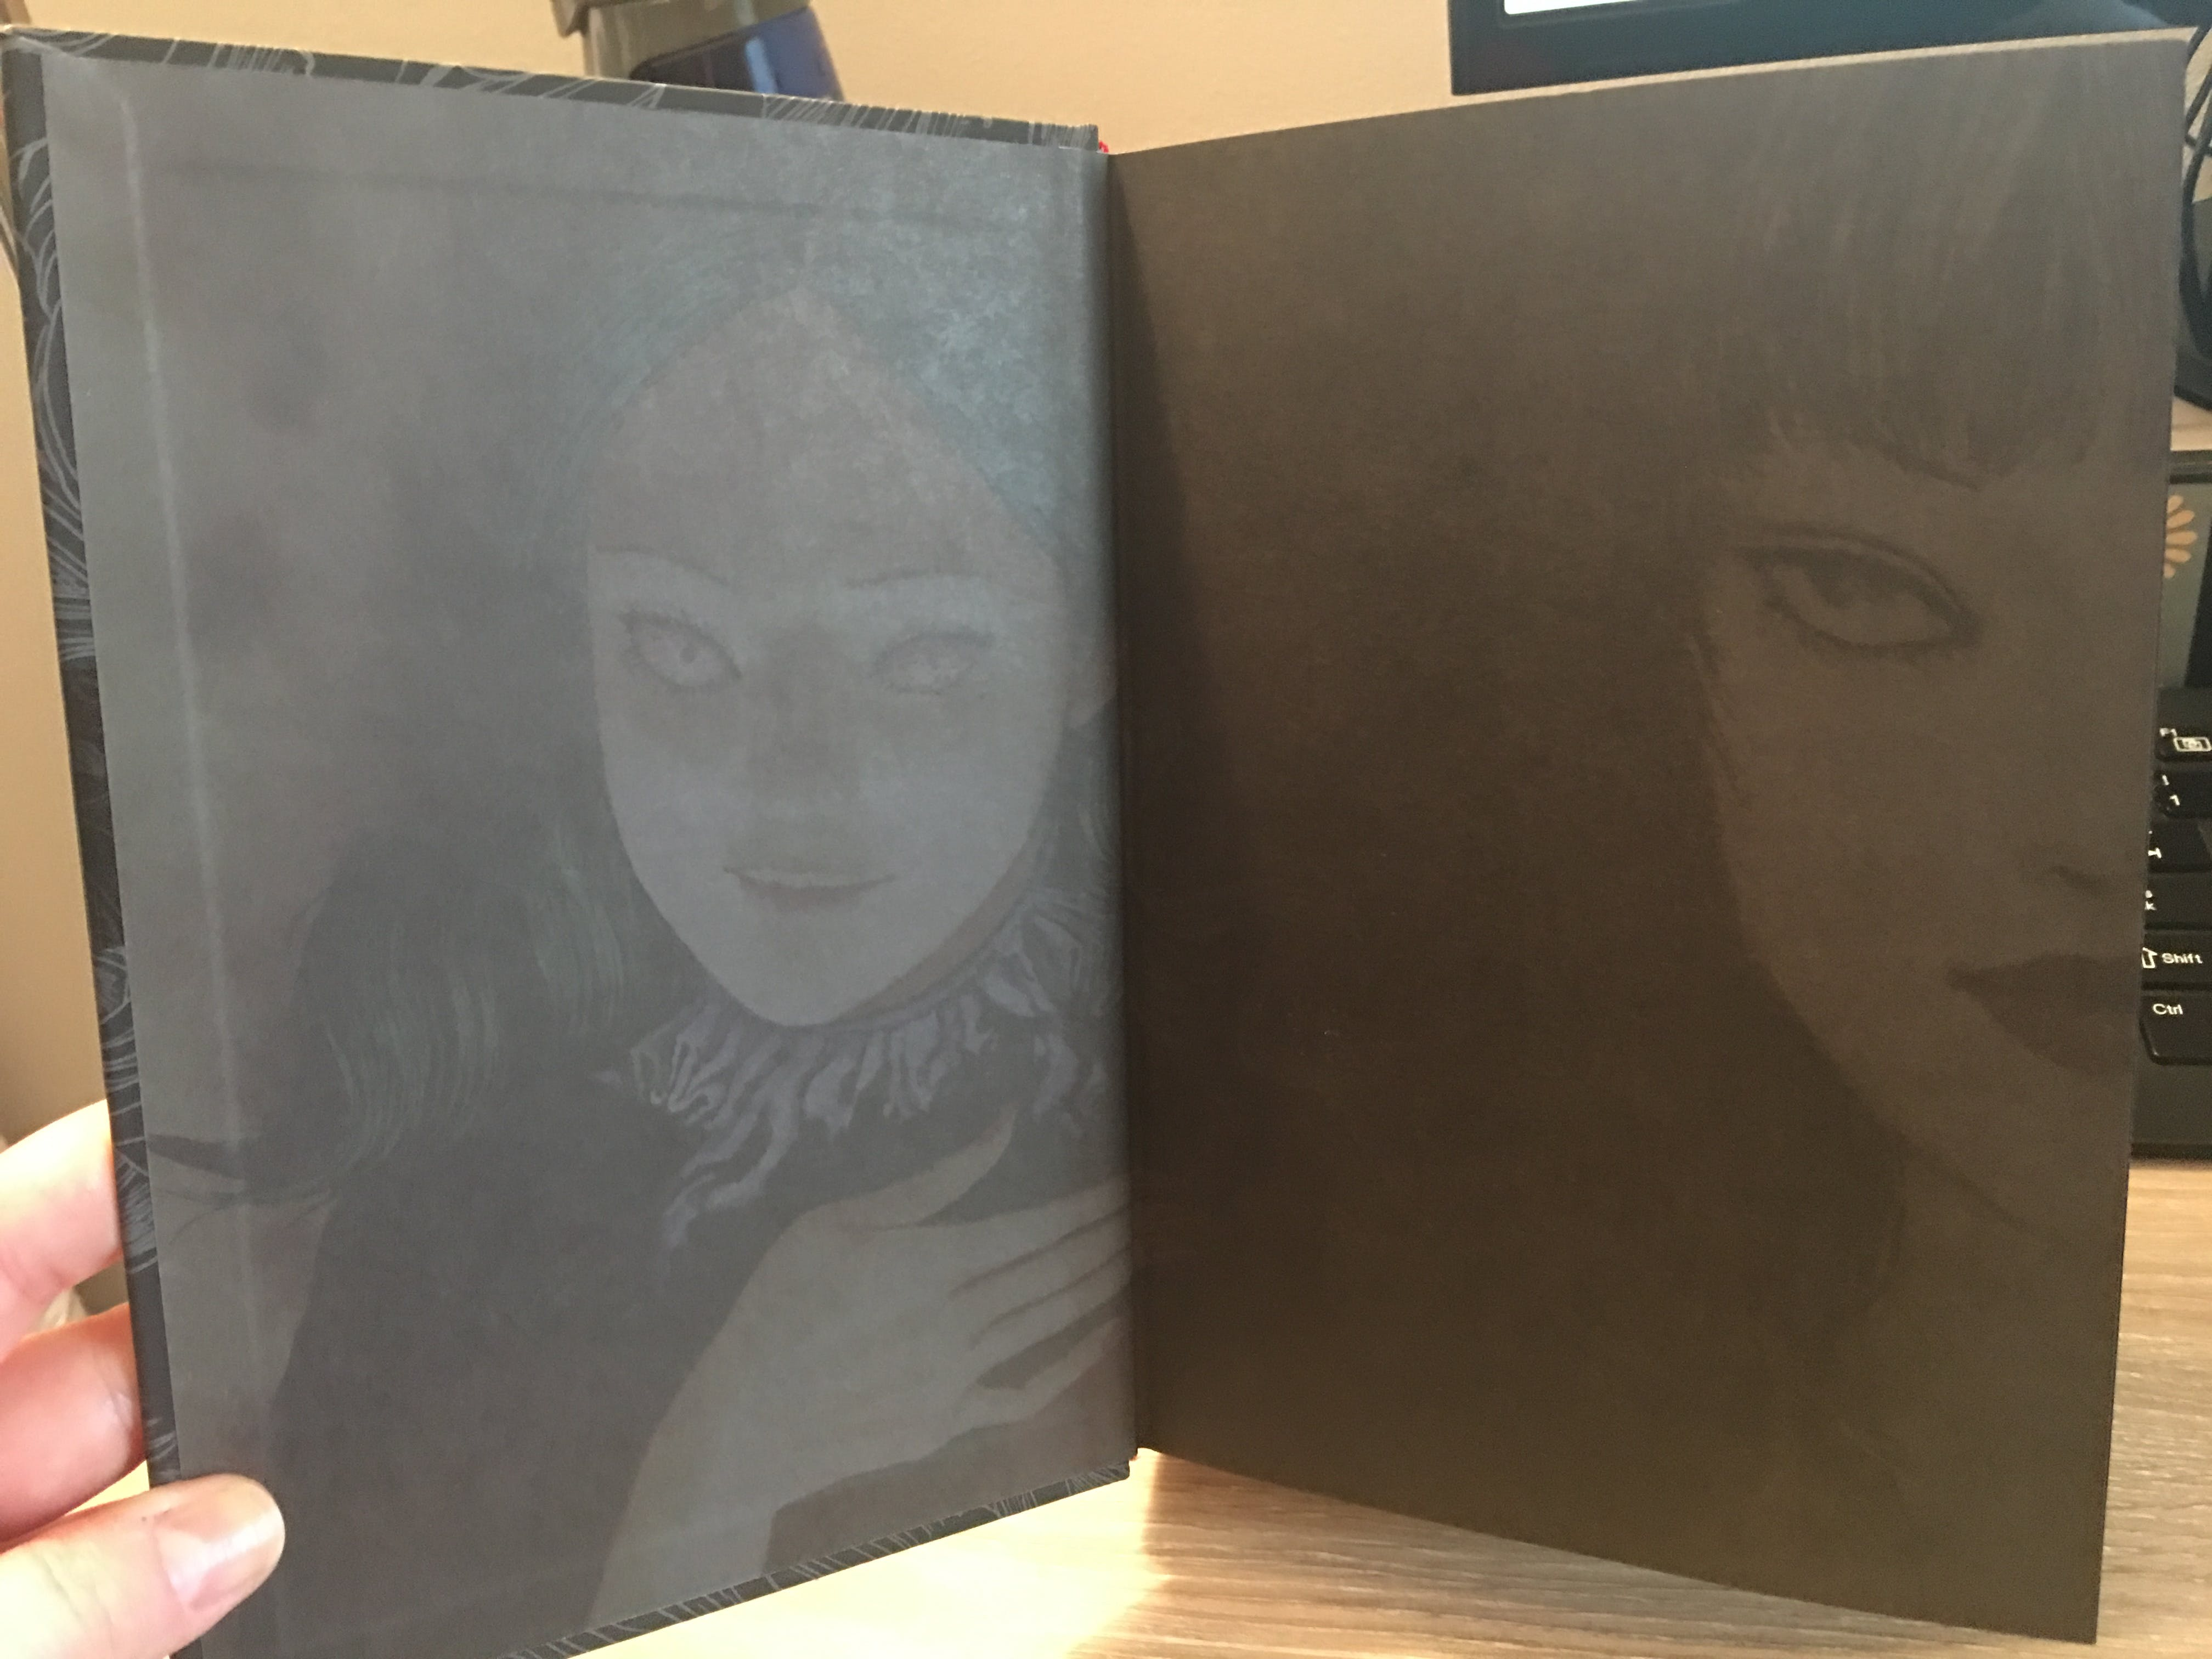 Even the black pages have a beautiful (and creepy) touch.